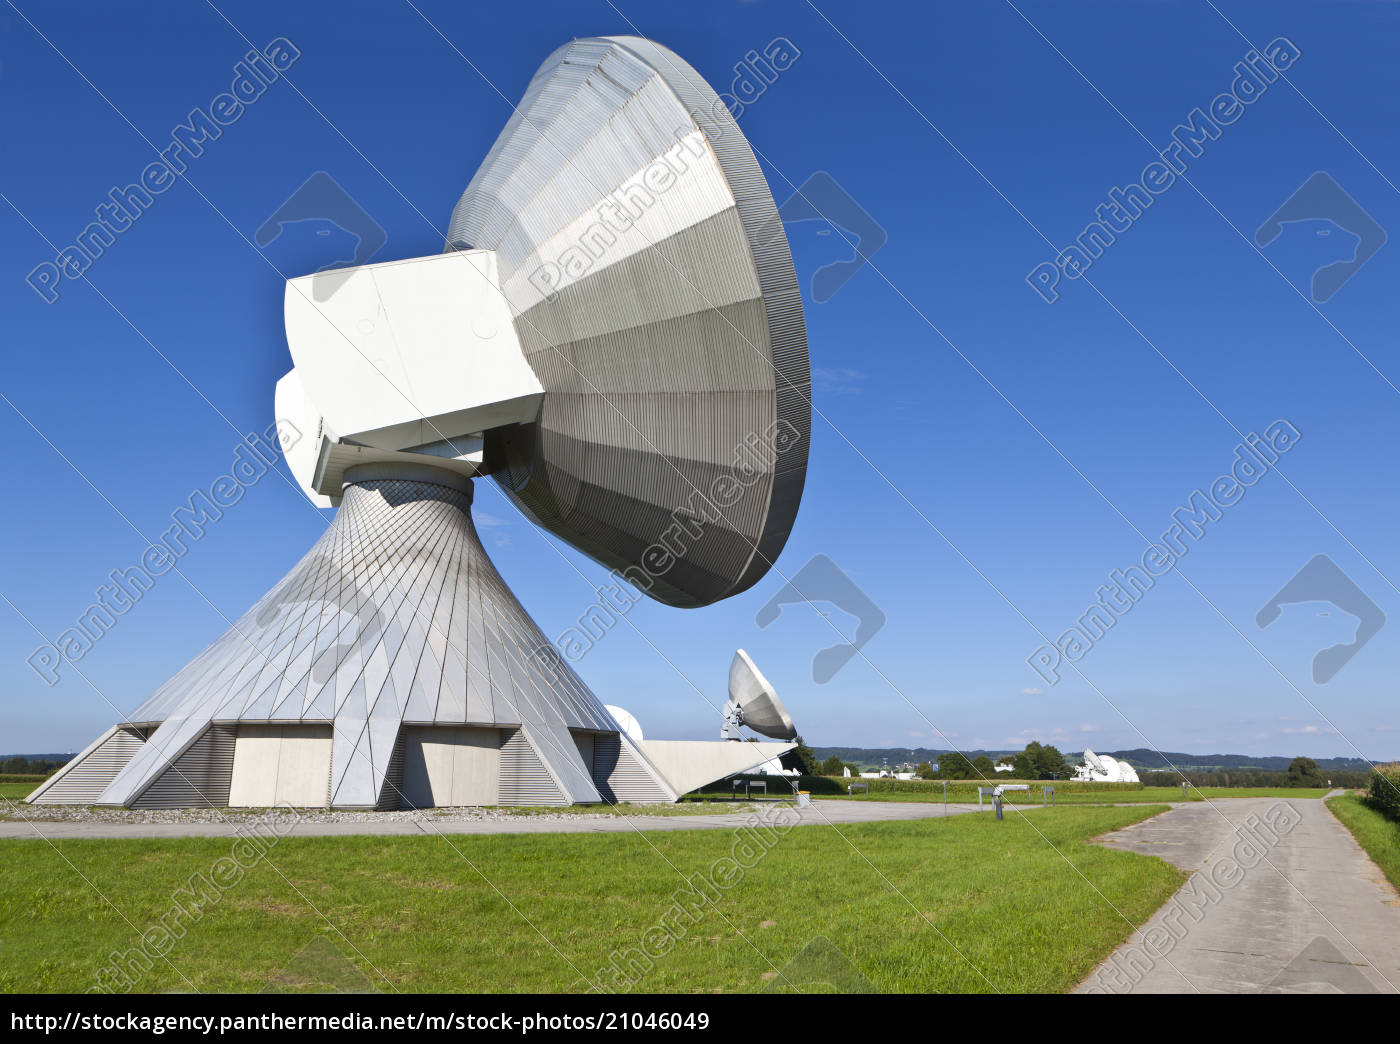 germany, , bavaria, , view, of, satellite, dishes - 21046049